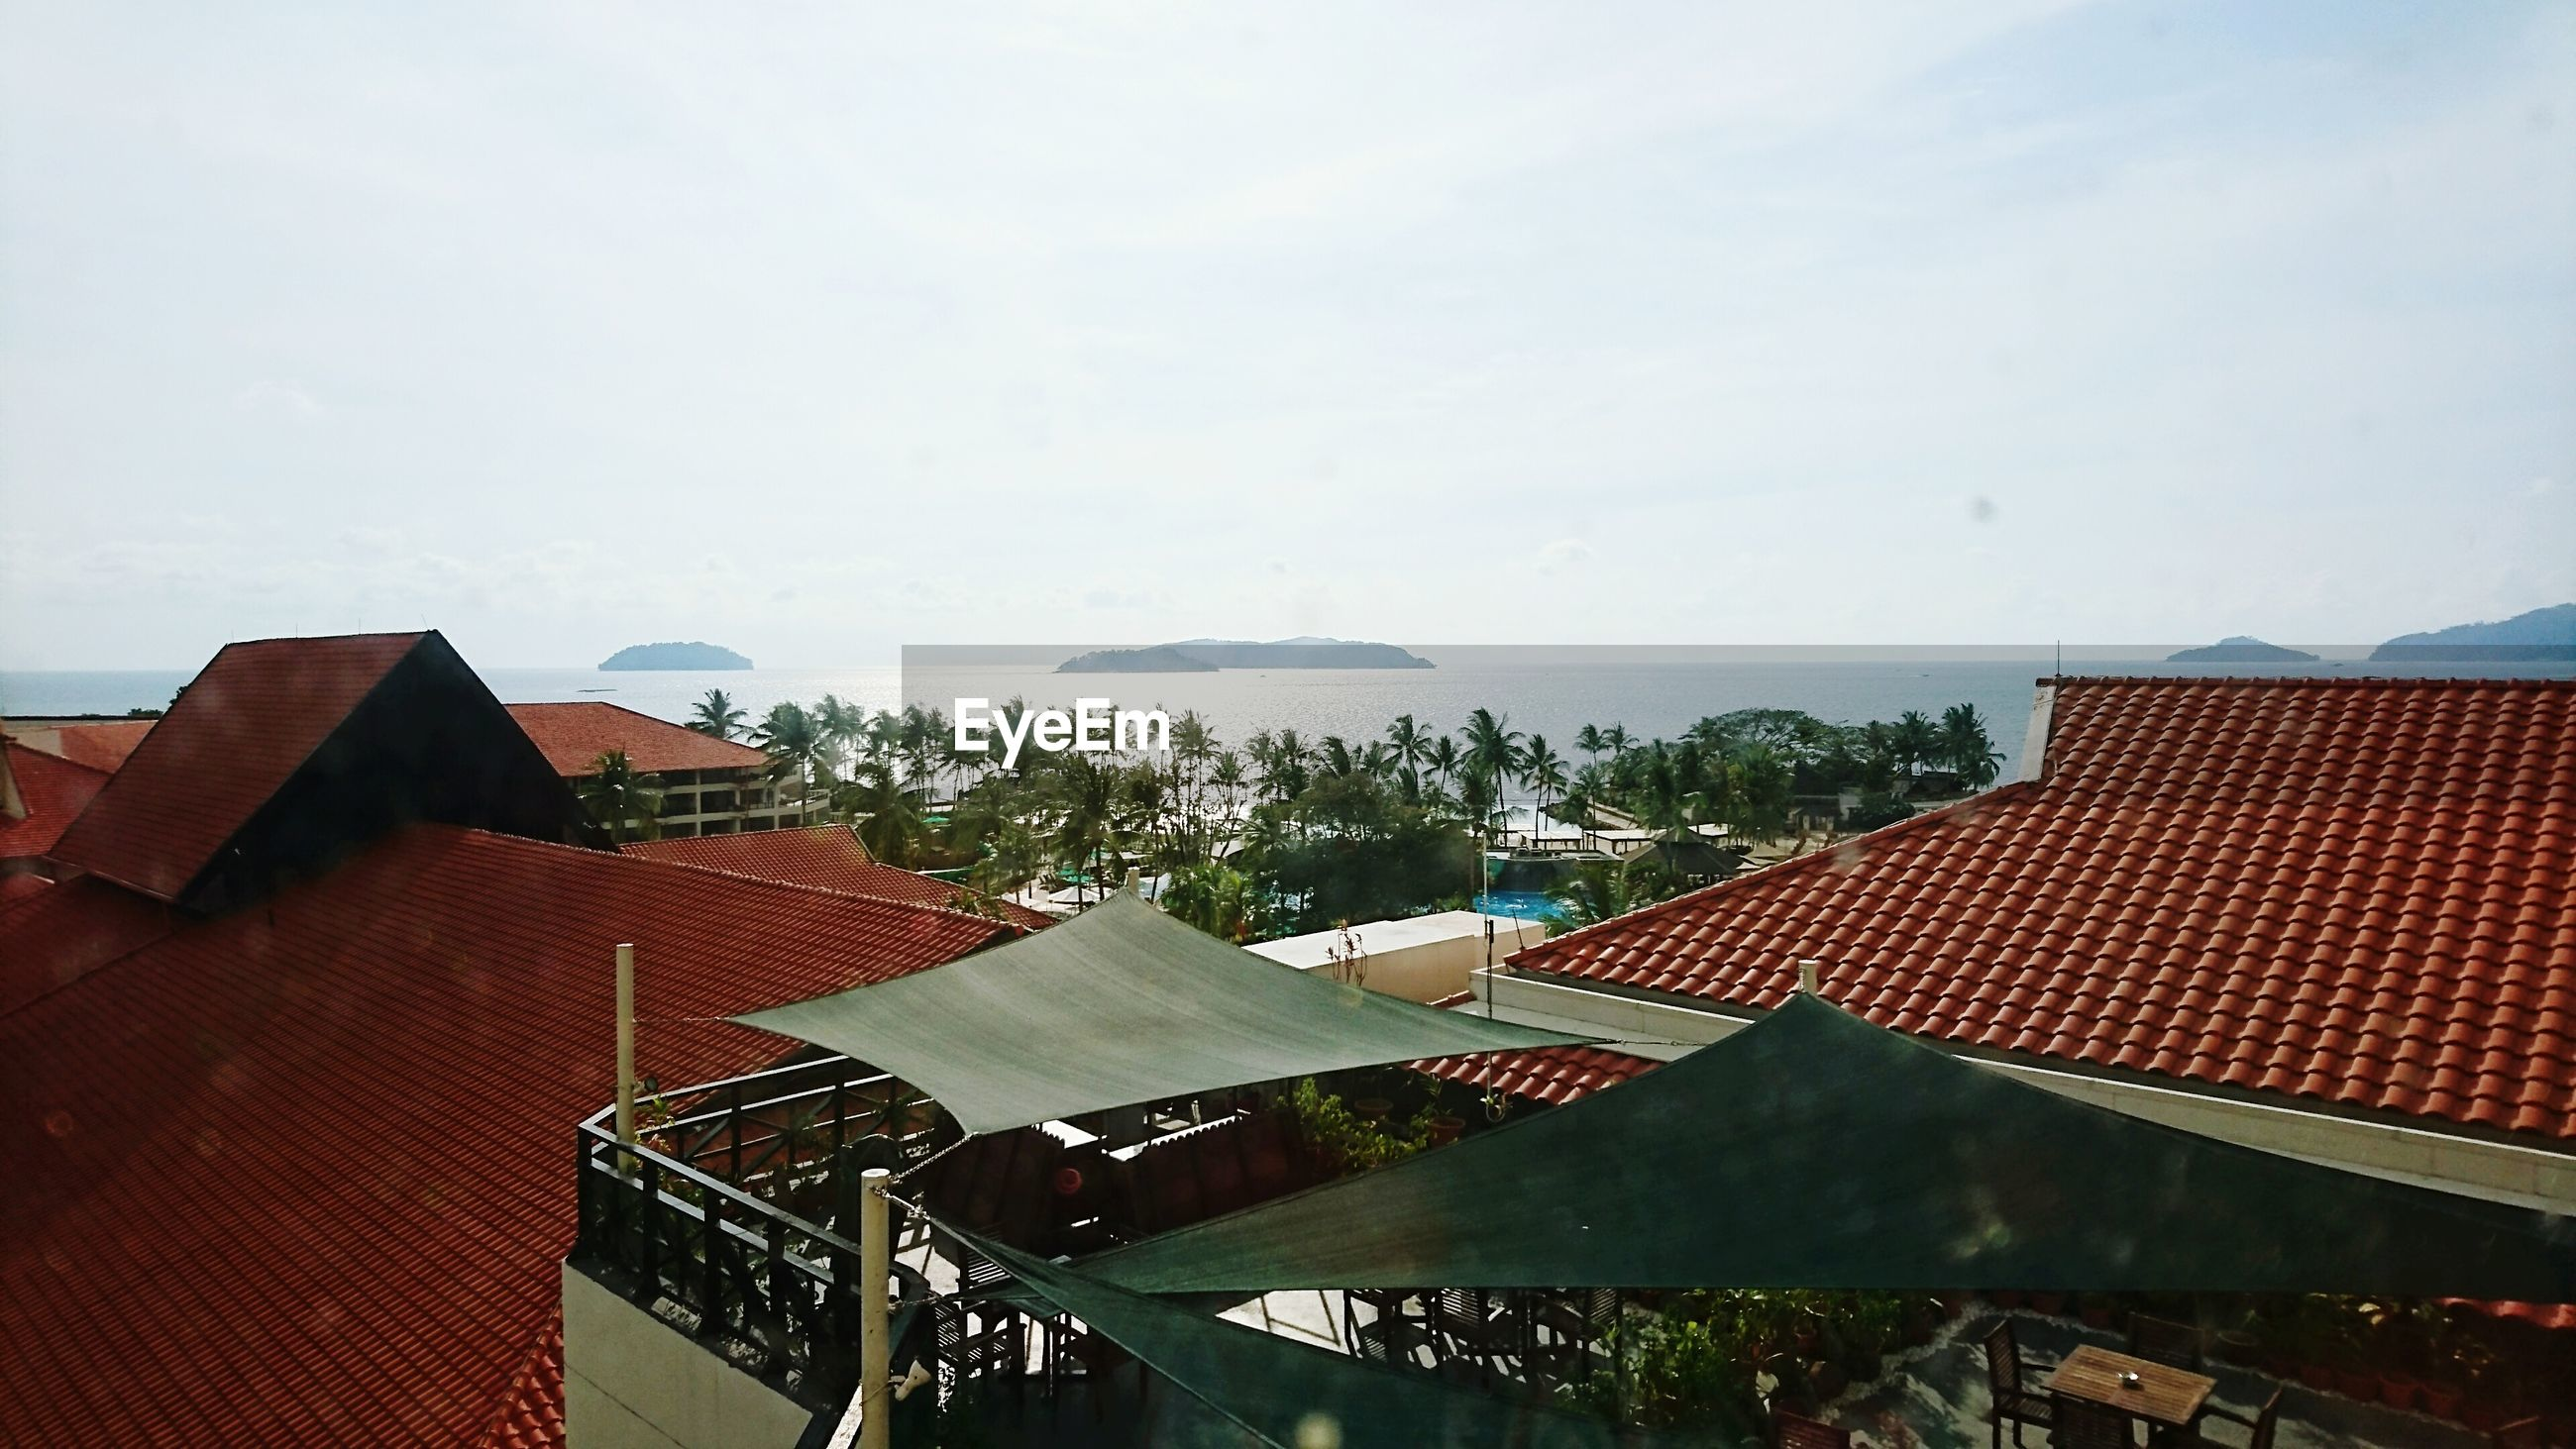 architecture, building exterior, built structure, roof, house, water, sky, high angle view, residential building, residential structure, sea, horizon over water, day, outdoors, roof tile, no people, clear sky, nature, town, residential district